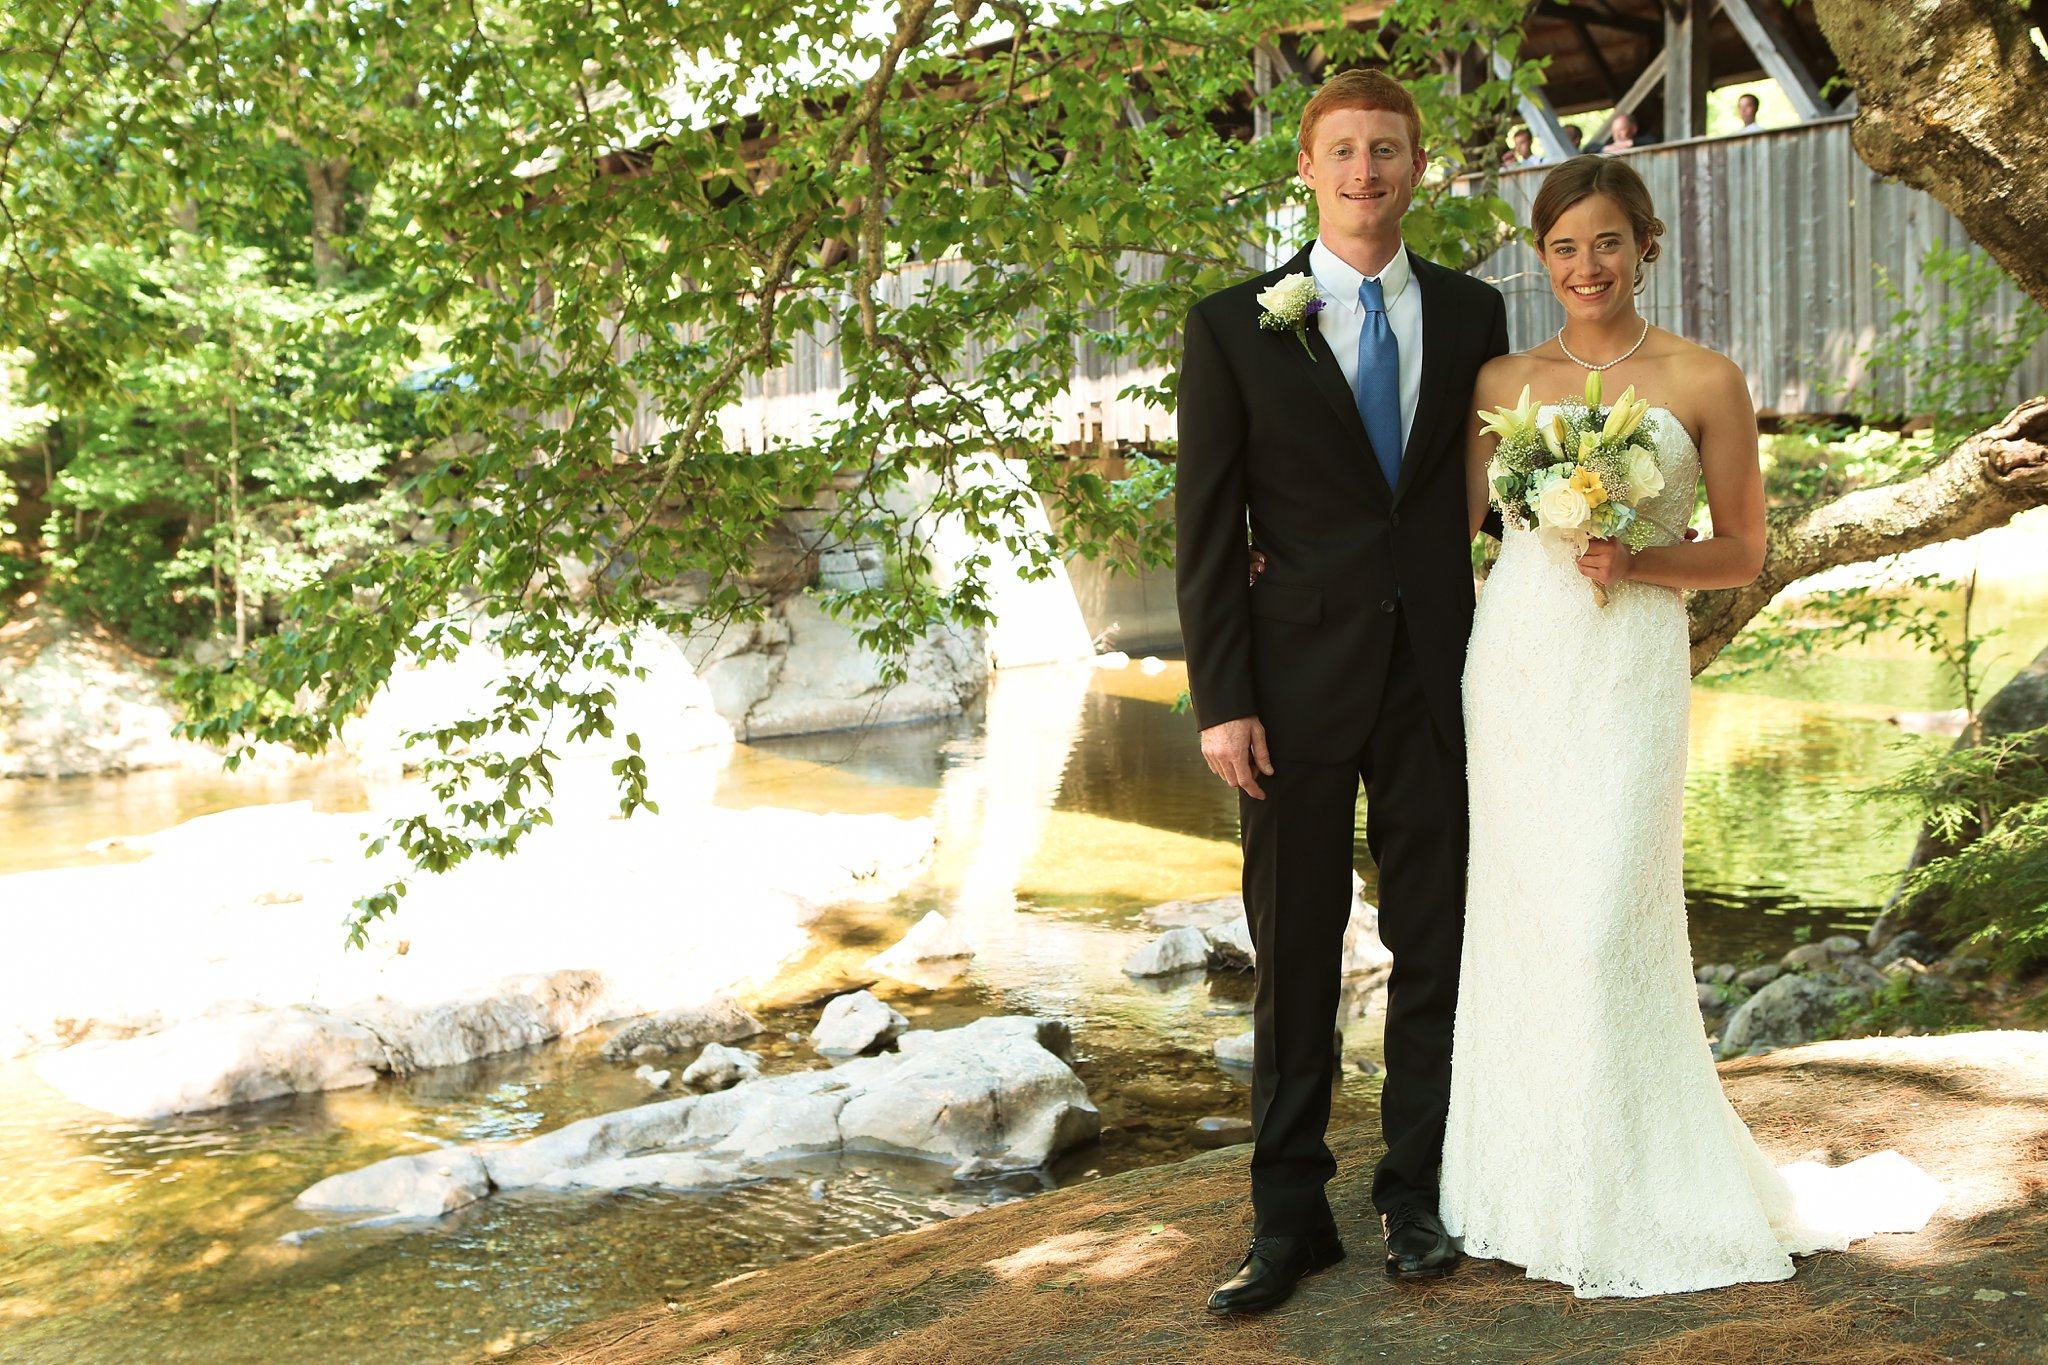 Wedding-photography-at-the-Mountain-House-on-Sunday-River